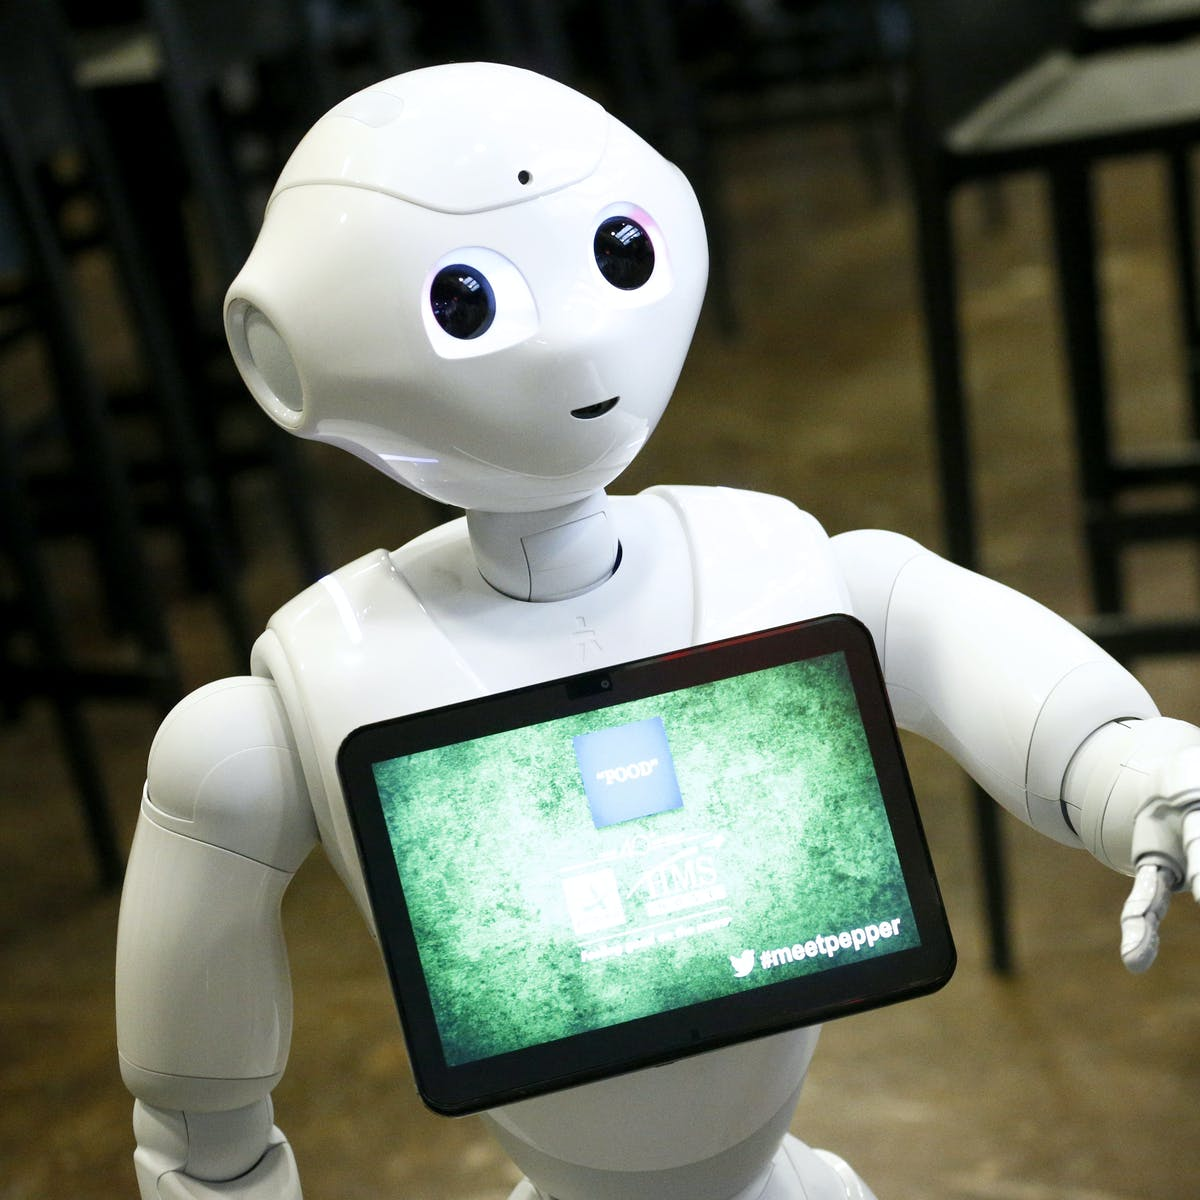 13 Home Robots to Buy to Feel Like You're Living in the Future | Inverse